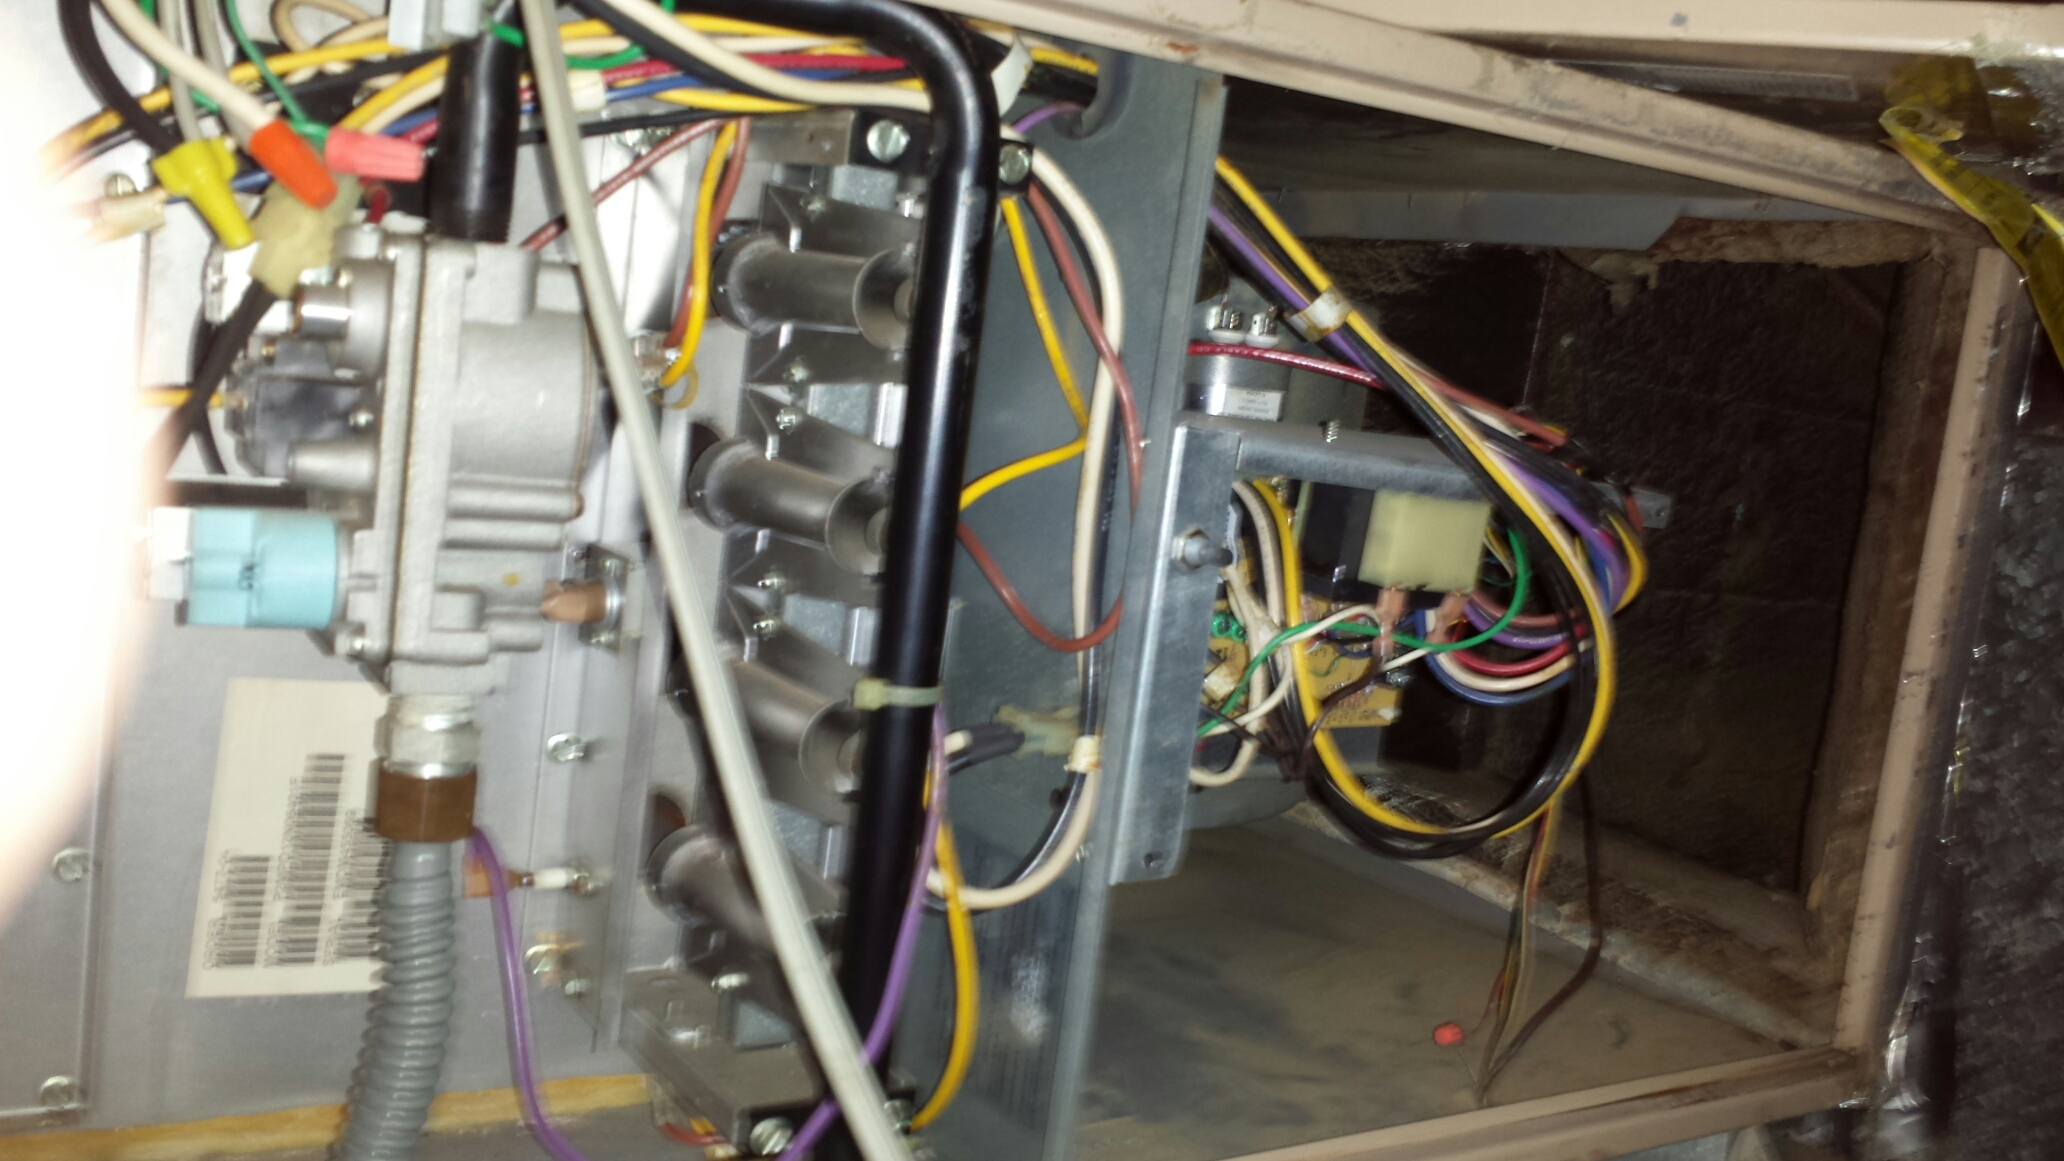 Lakeland, LA - Heater service Baton Rouge LA. Technician perform heat tune up on system. Check compressor for proper blower amperage. Inspect for proper duct cleaning. Check for germicidal UV light.